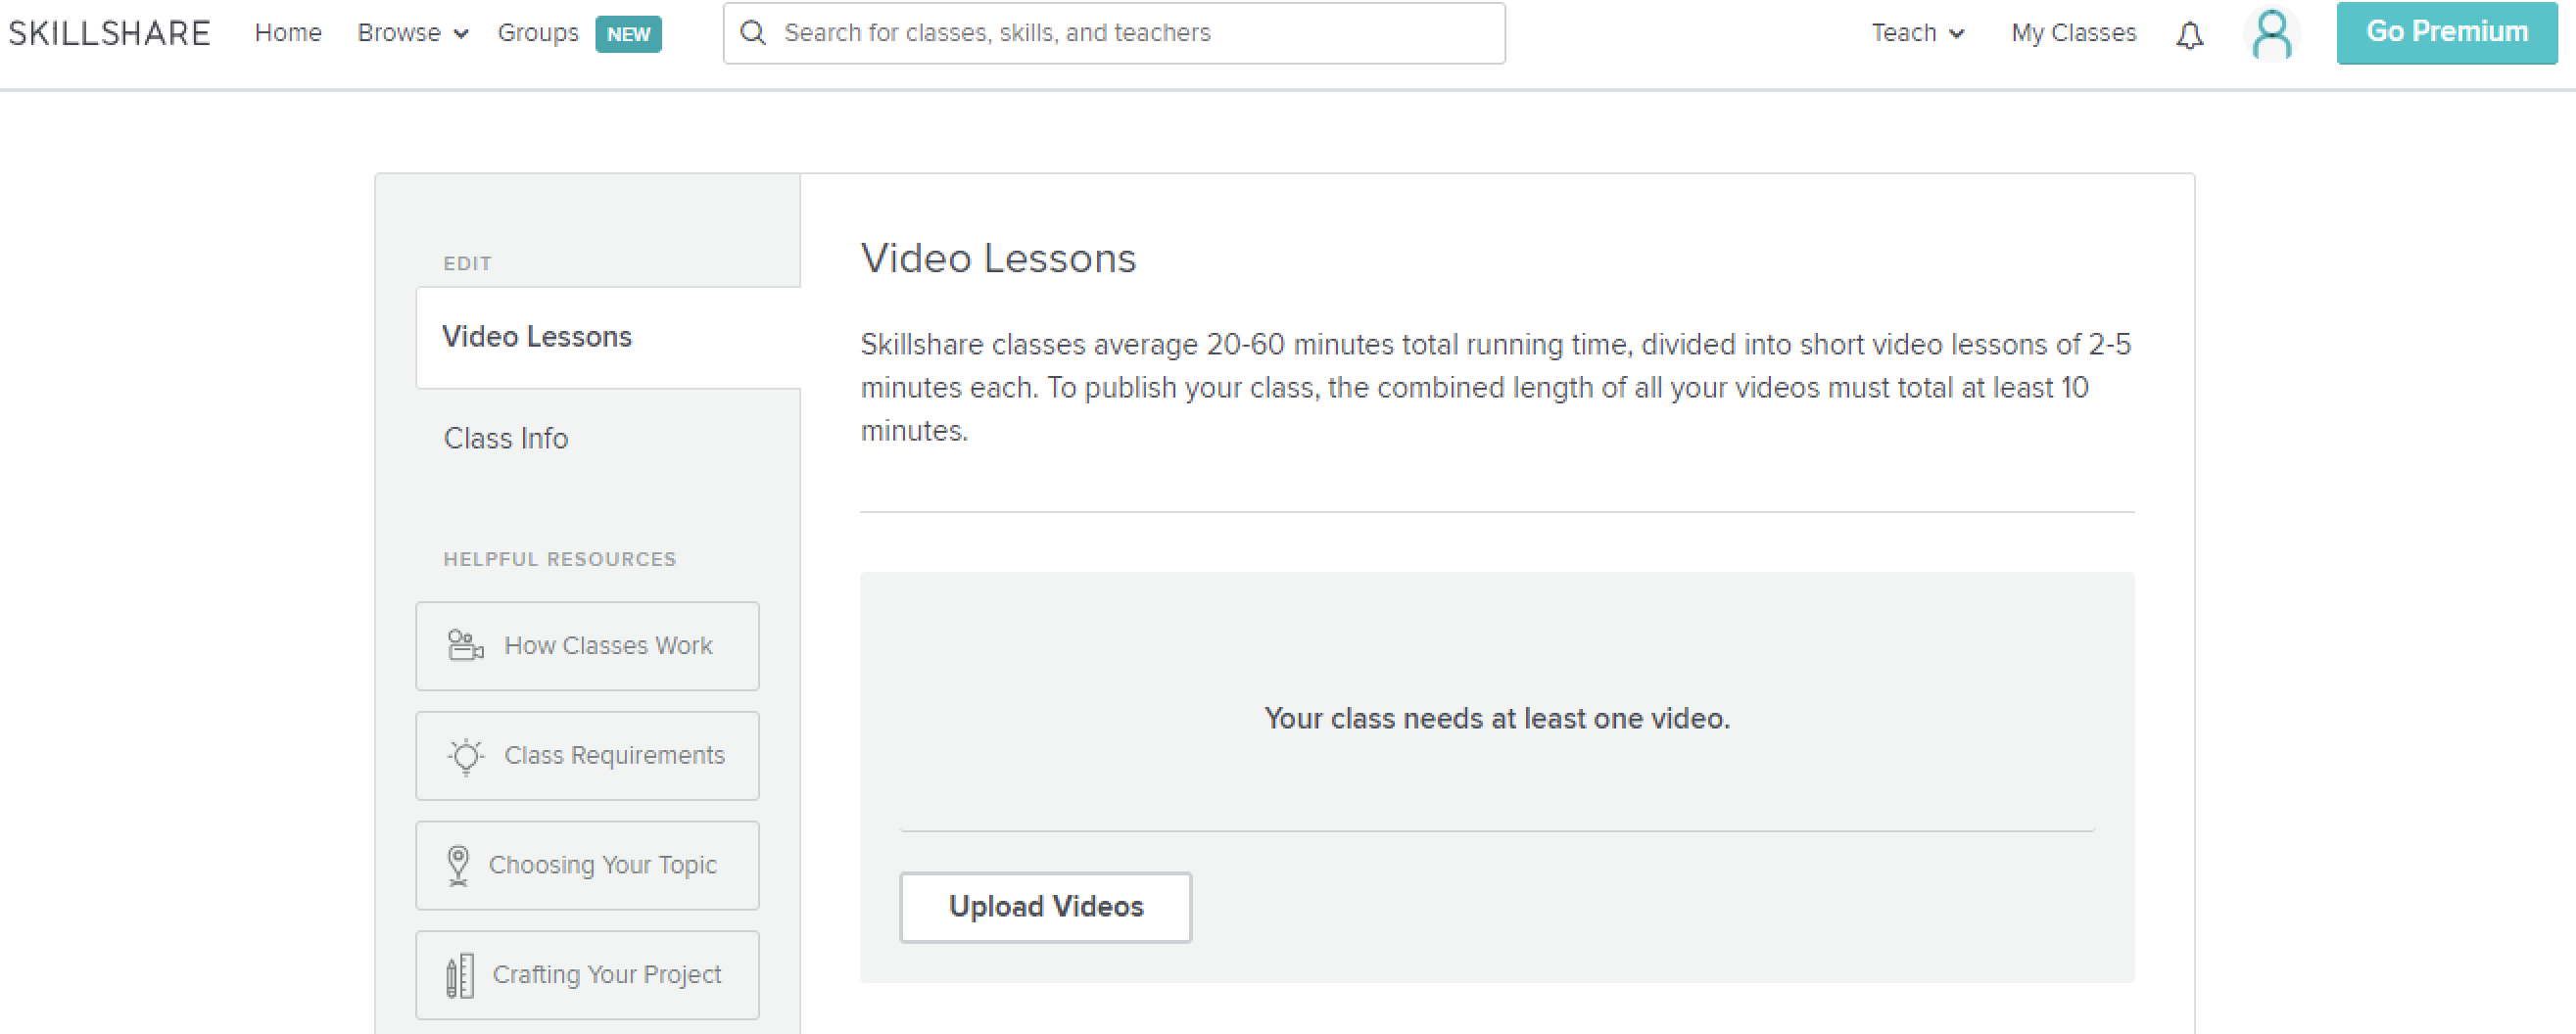 Skillshare course creation interface